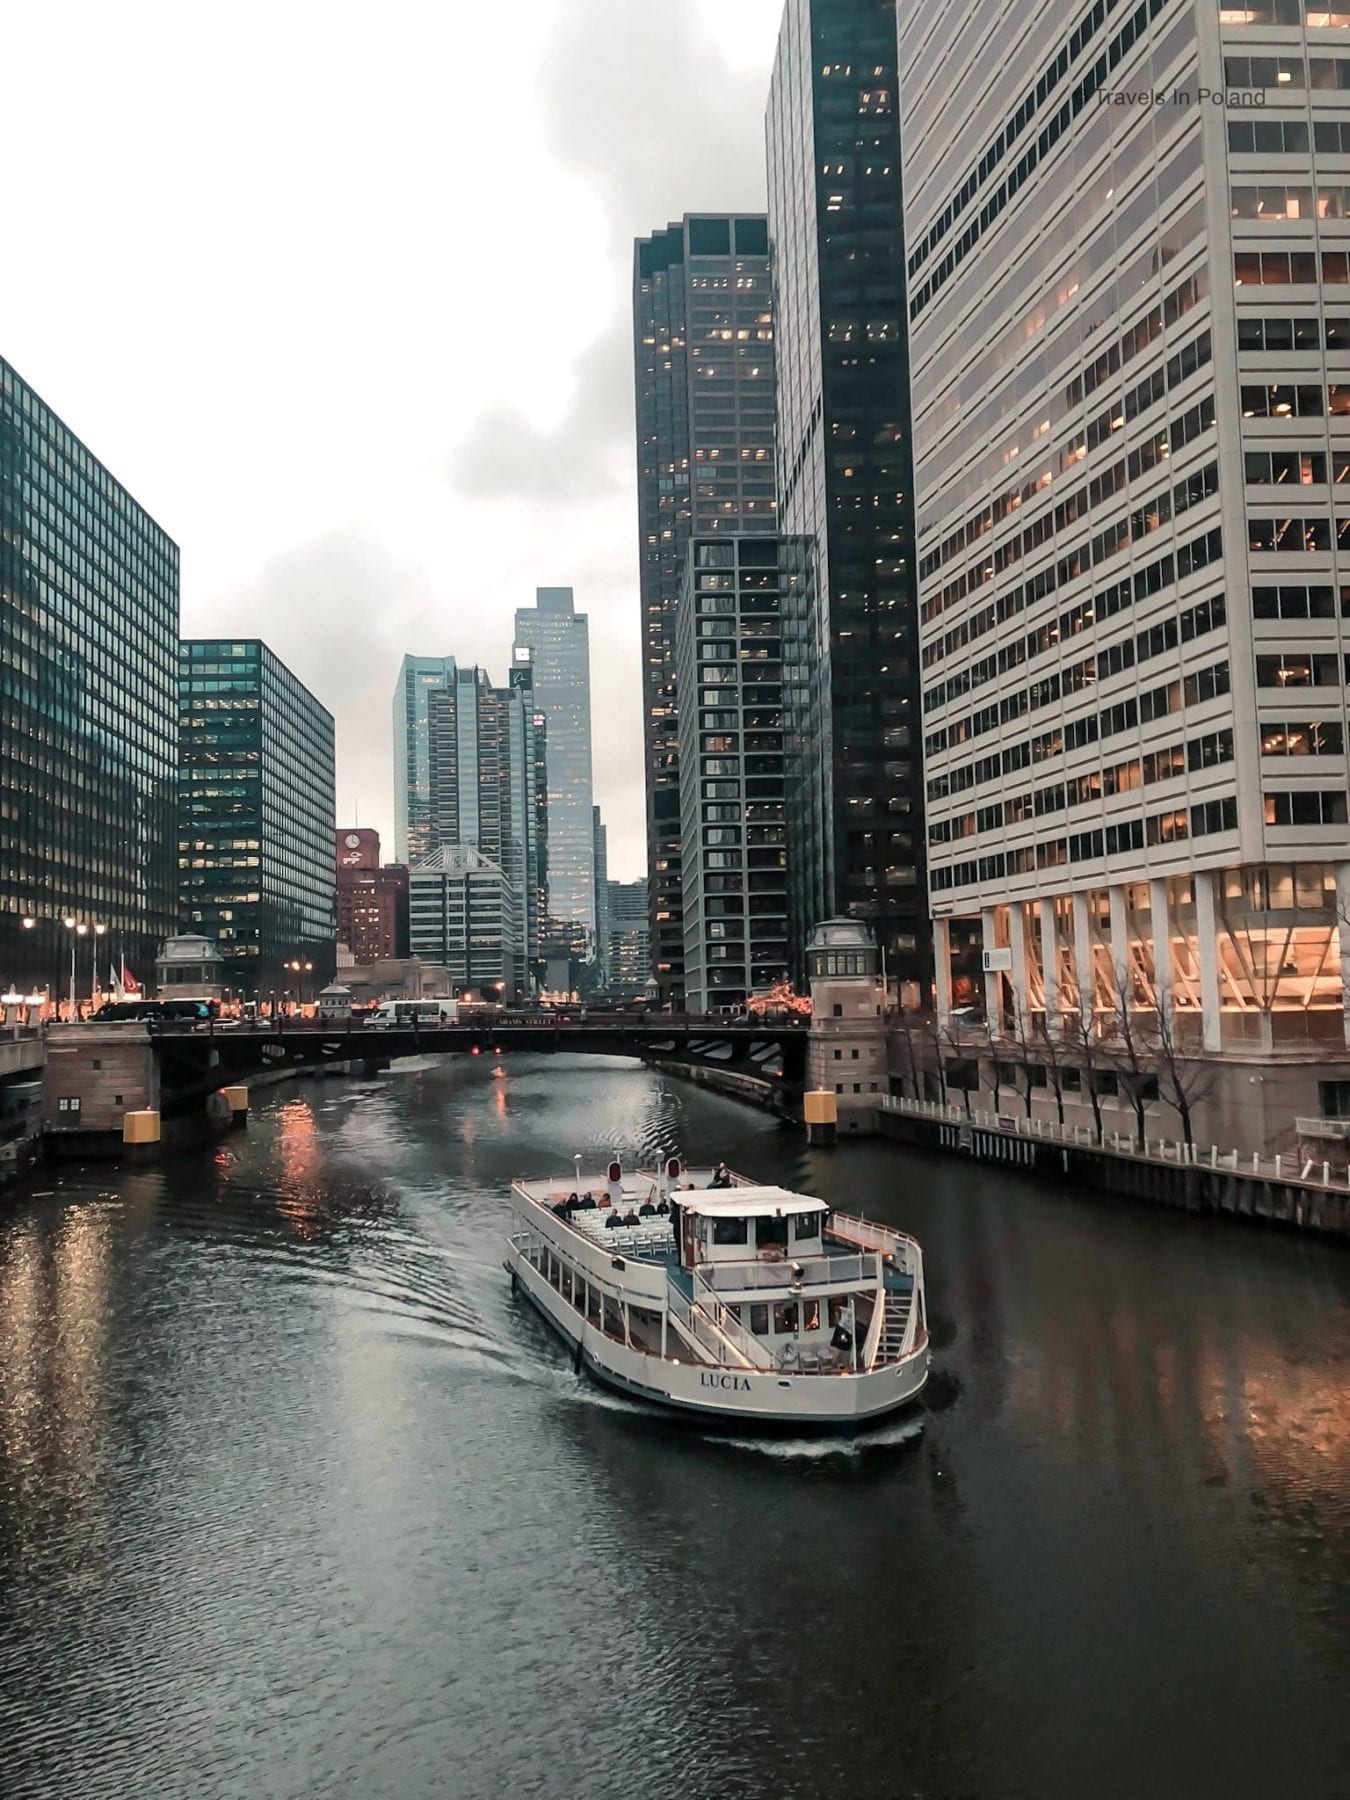 Summer Vacation in Chicago